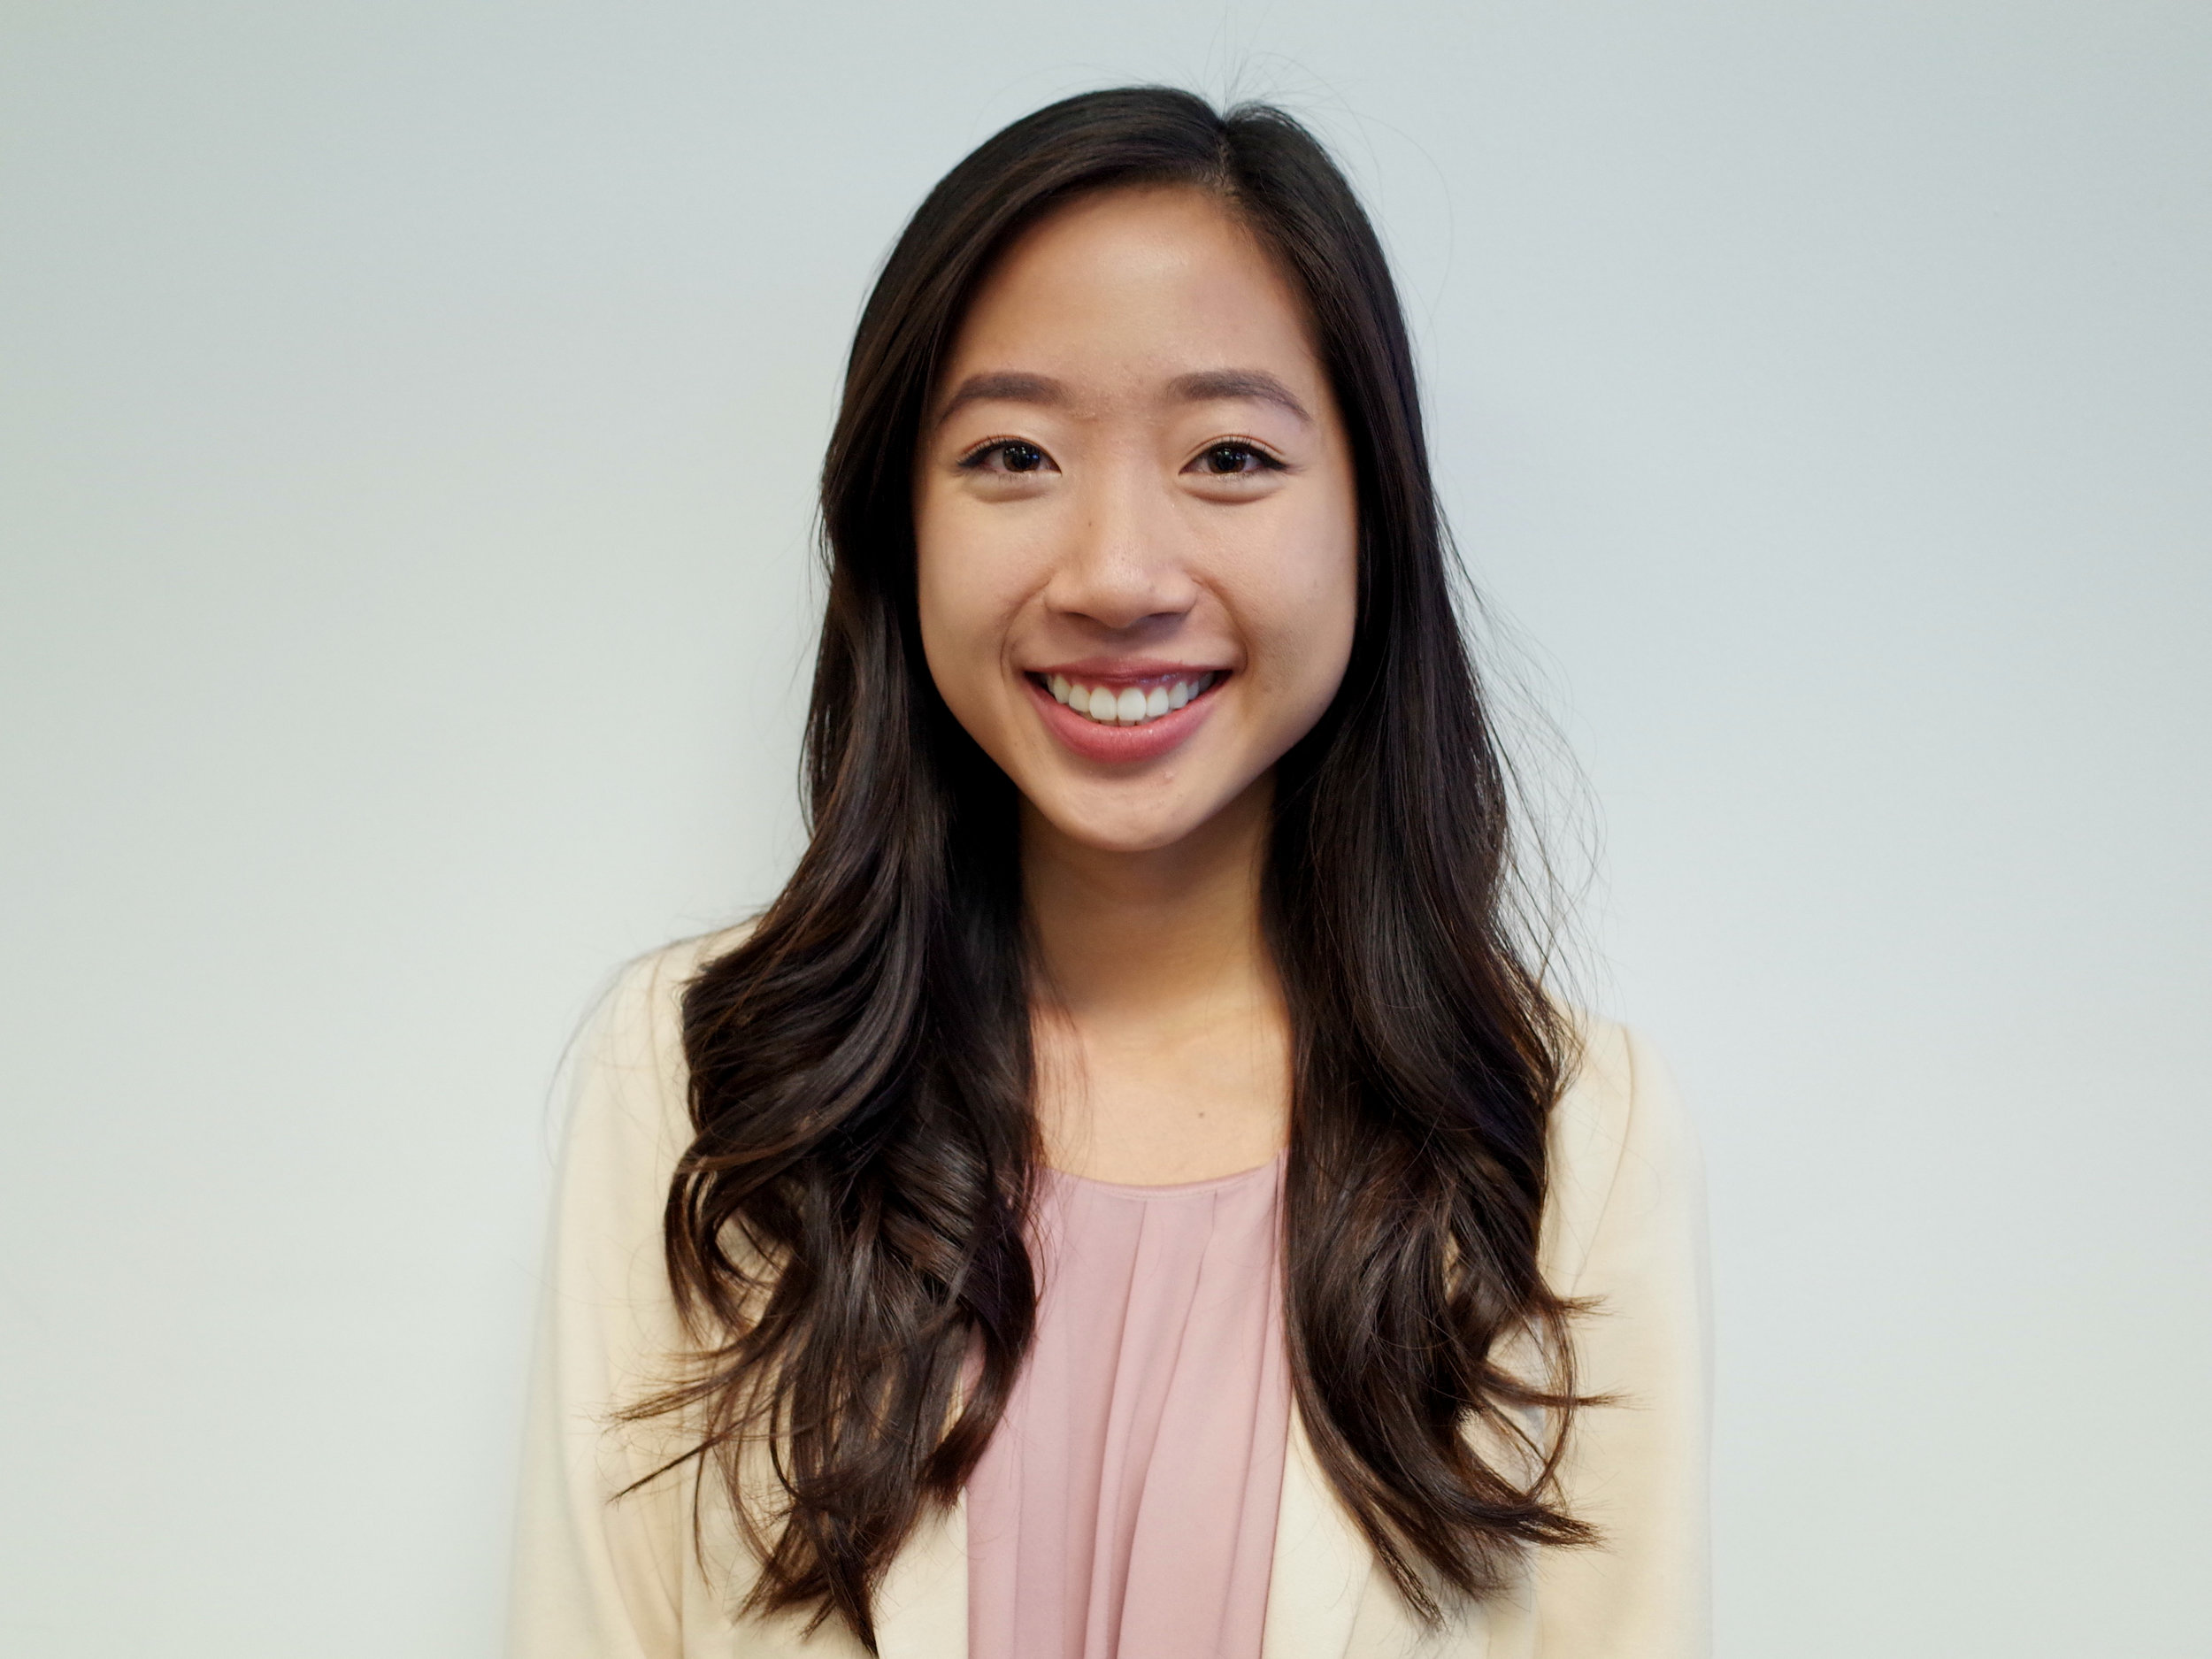 Joanne Tu   Major: Neurobiology, Physiology, and Behavior Career Goal: Pediatrician